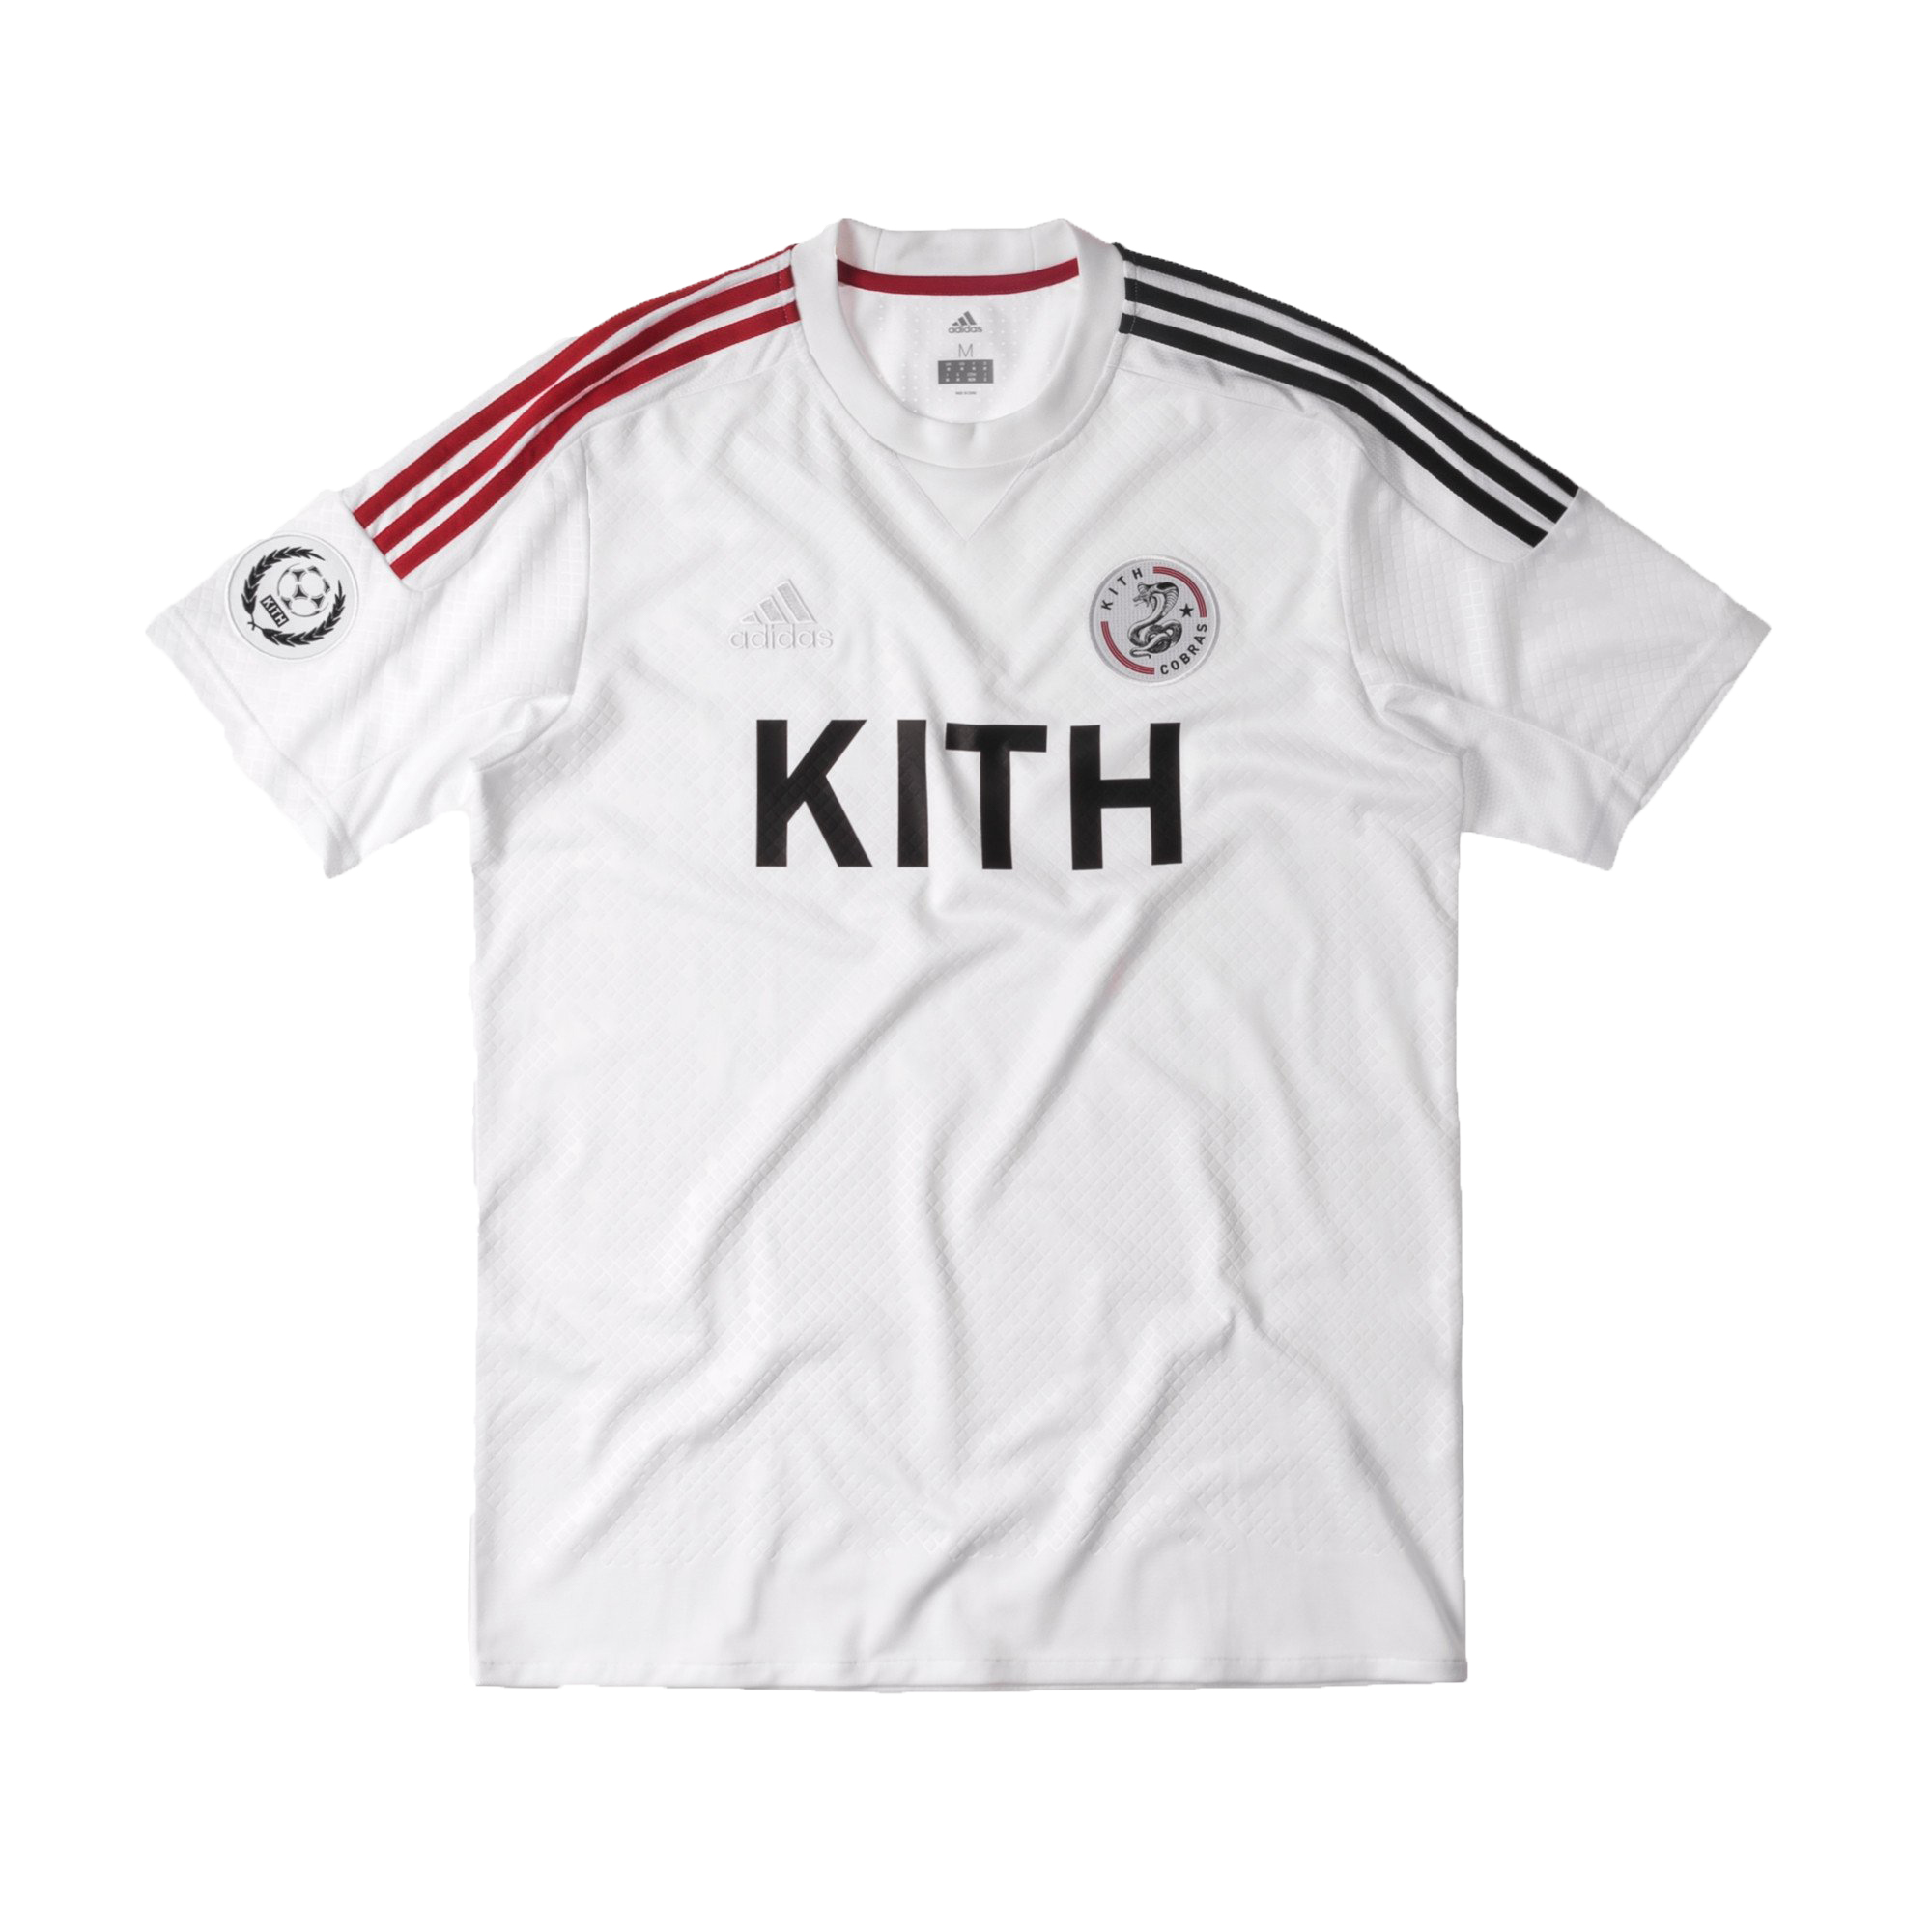 Kith adidas Soccer Cobras Home Game Jersey White - SS17